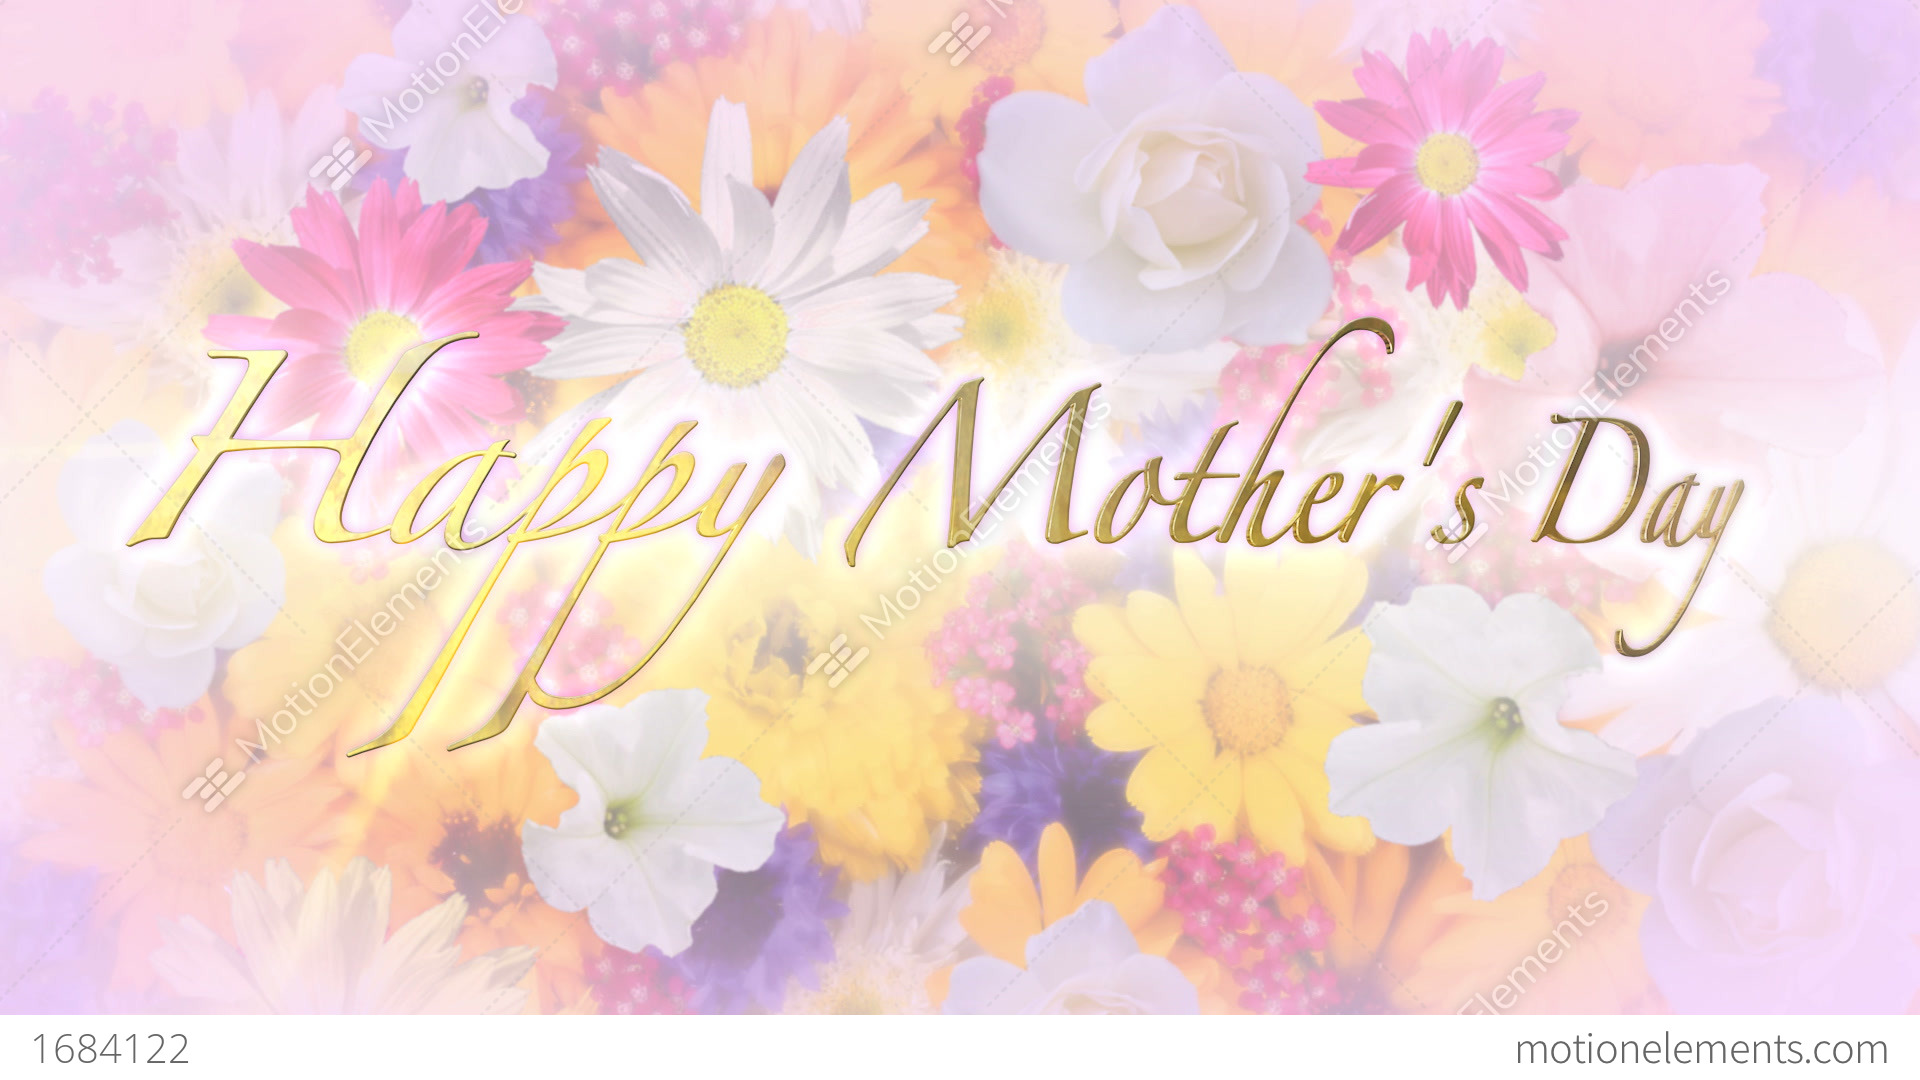 Wallpaper Of Happy Mothers Day: Happy Mother's Day Title And Background Stock Animation